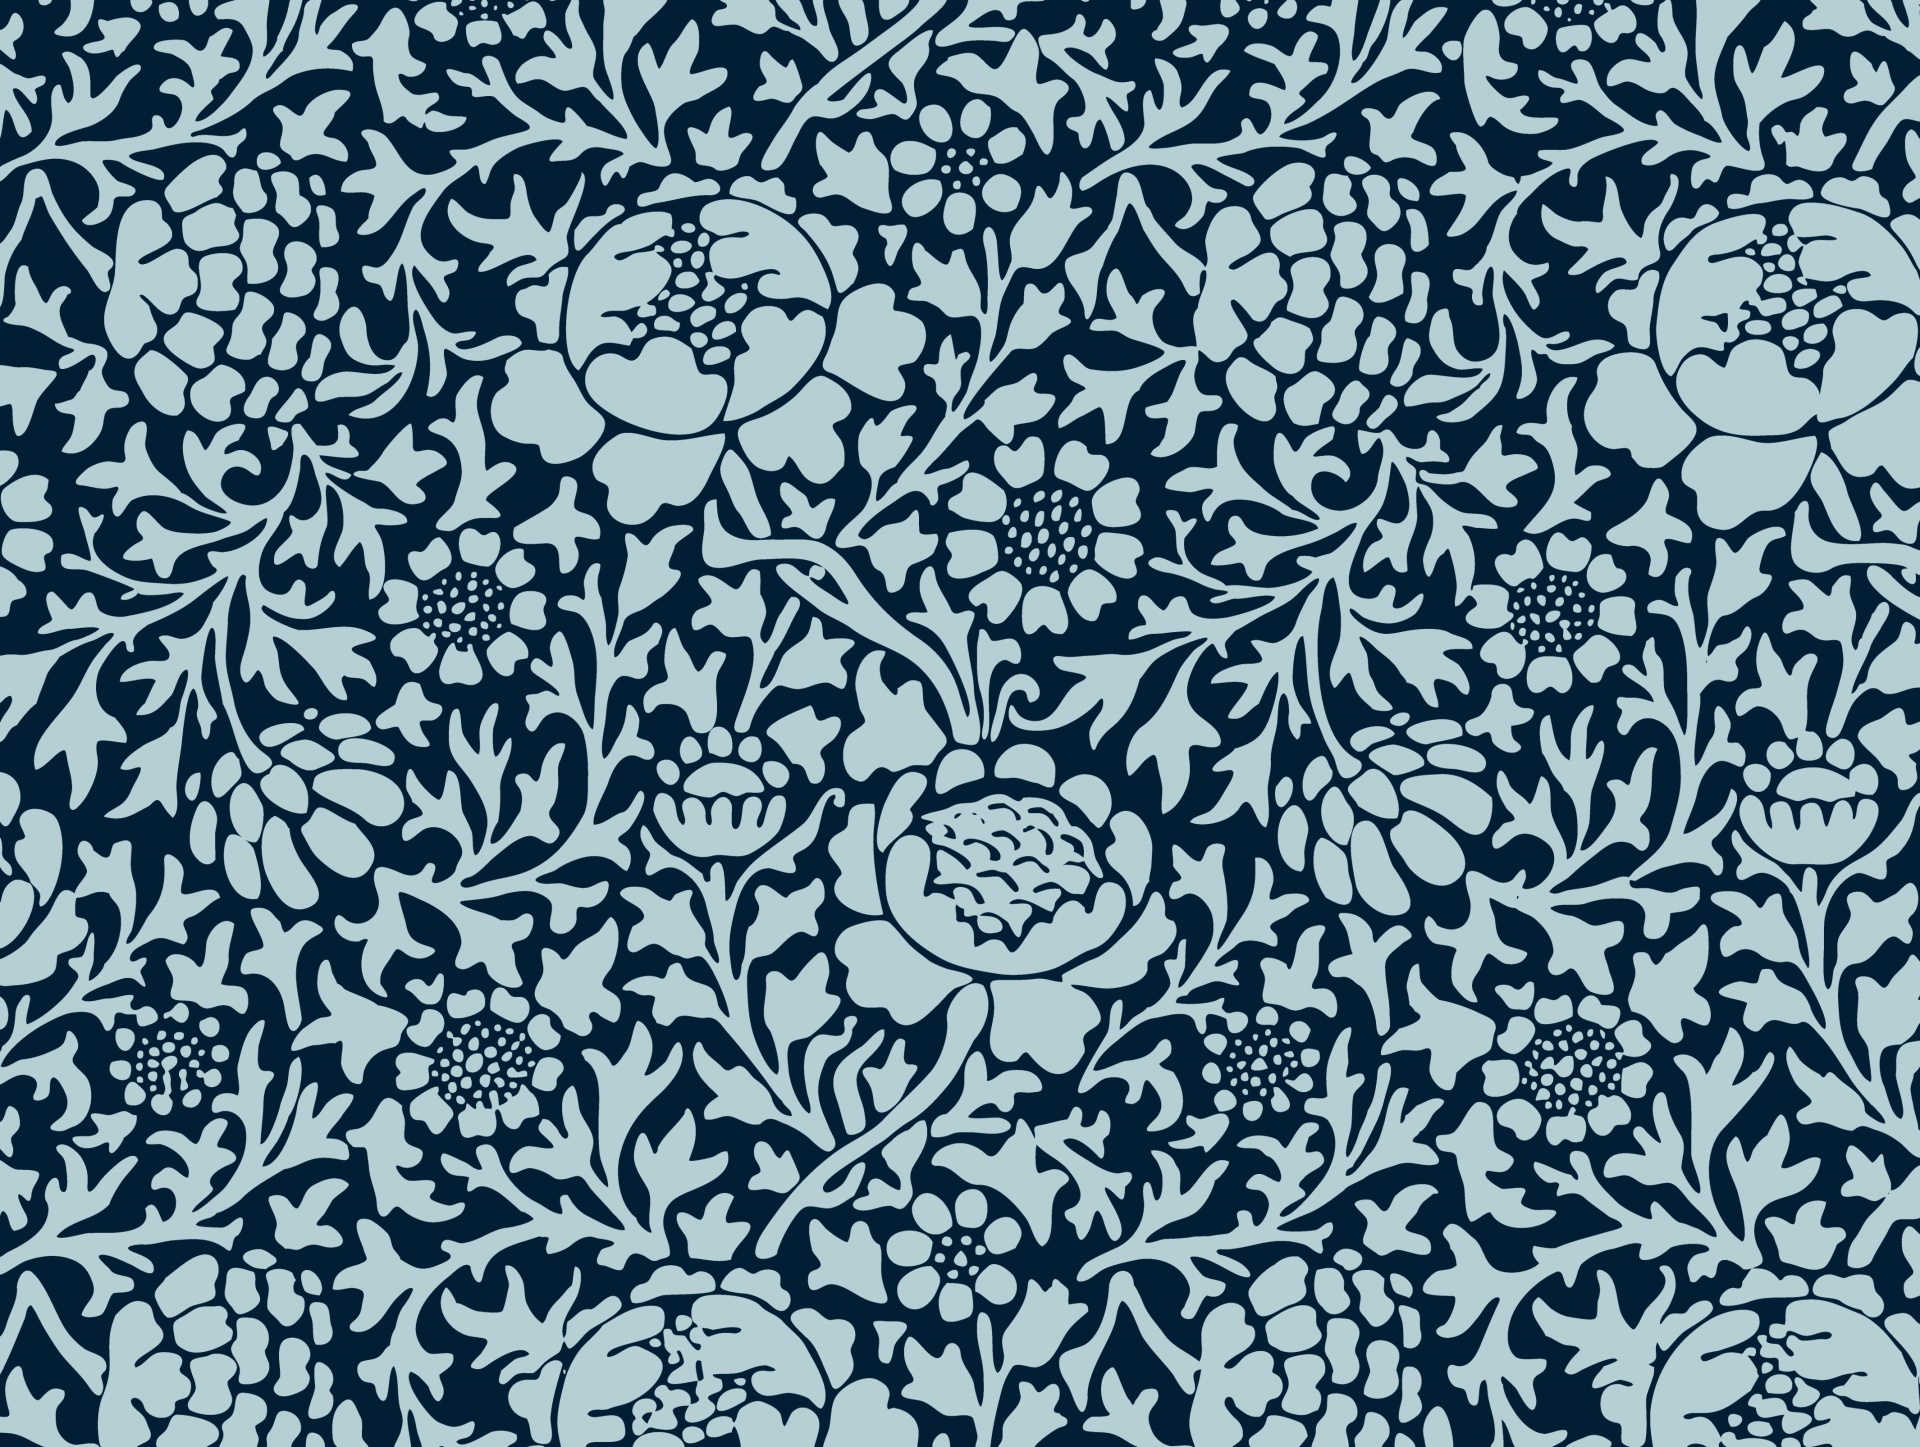 Floral Vintage Wallpaper Background Pattern Free Image From